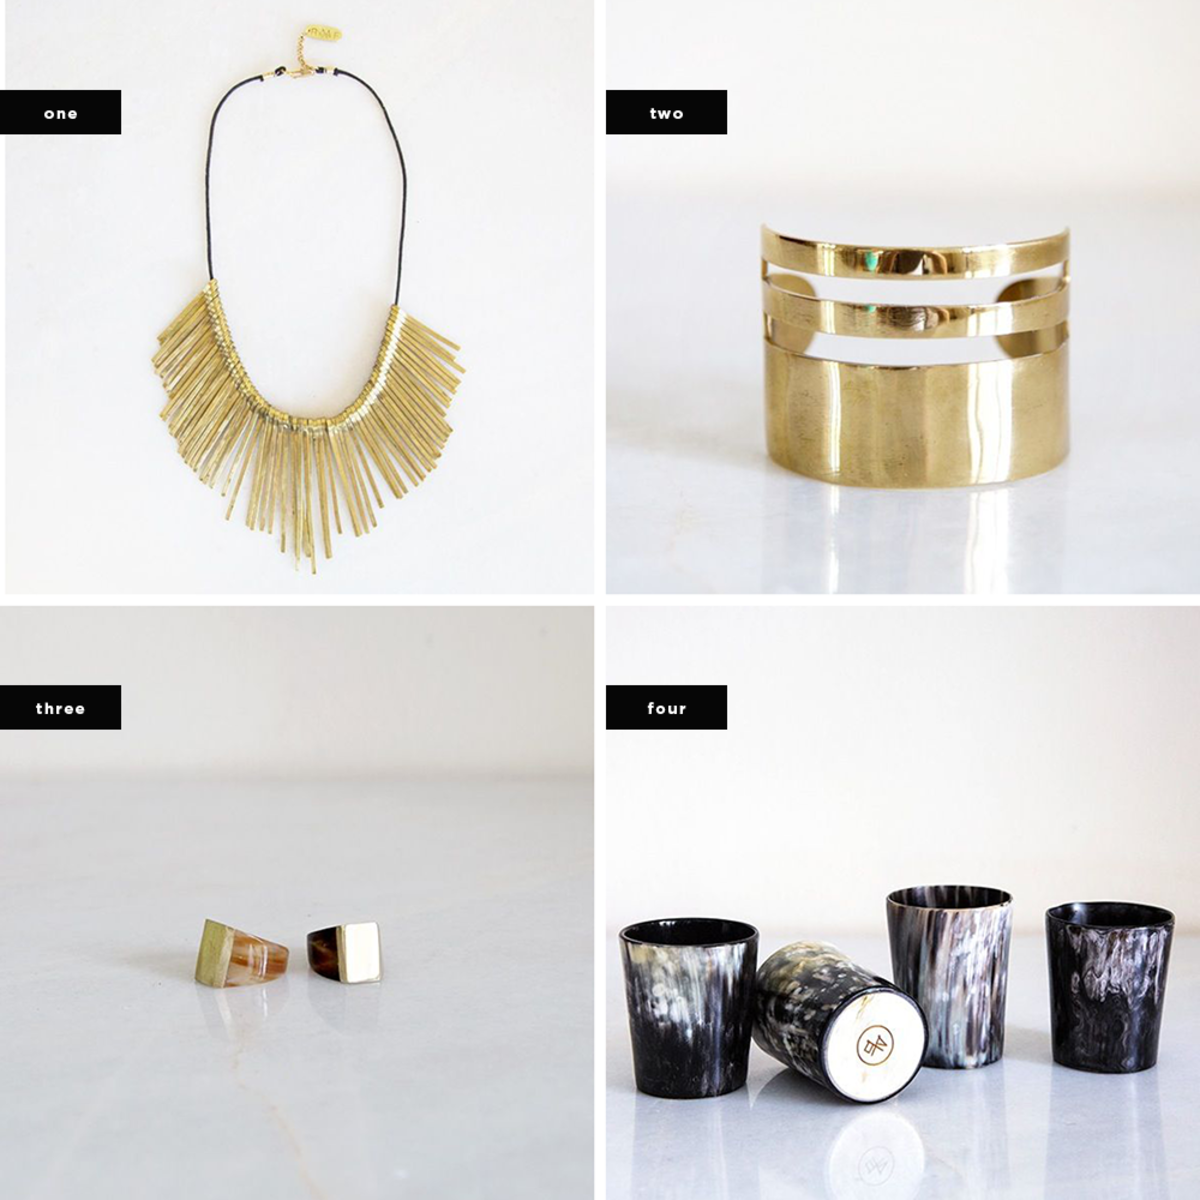 1. Gold Spikes Necklace, $115 / 2. Triple Band Brass Cuff, $150 / 3. Cow Horn and Brass Statement Ring, $75 / 4. Cow Horn Whisky Tumbler Set, $75